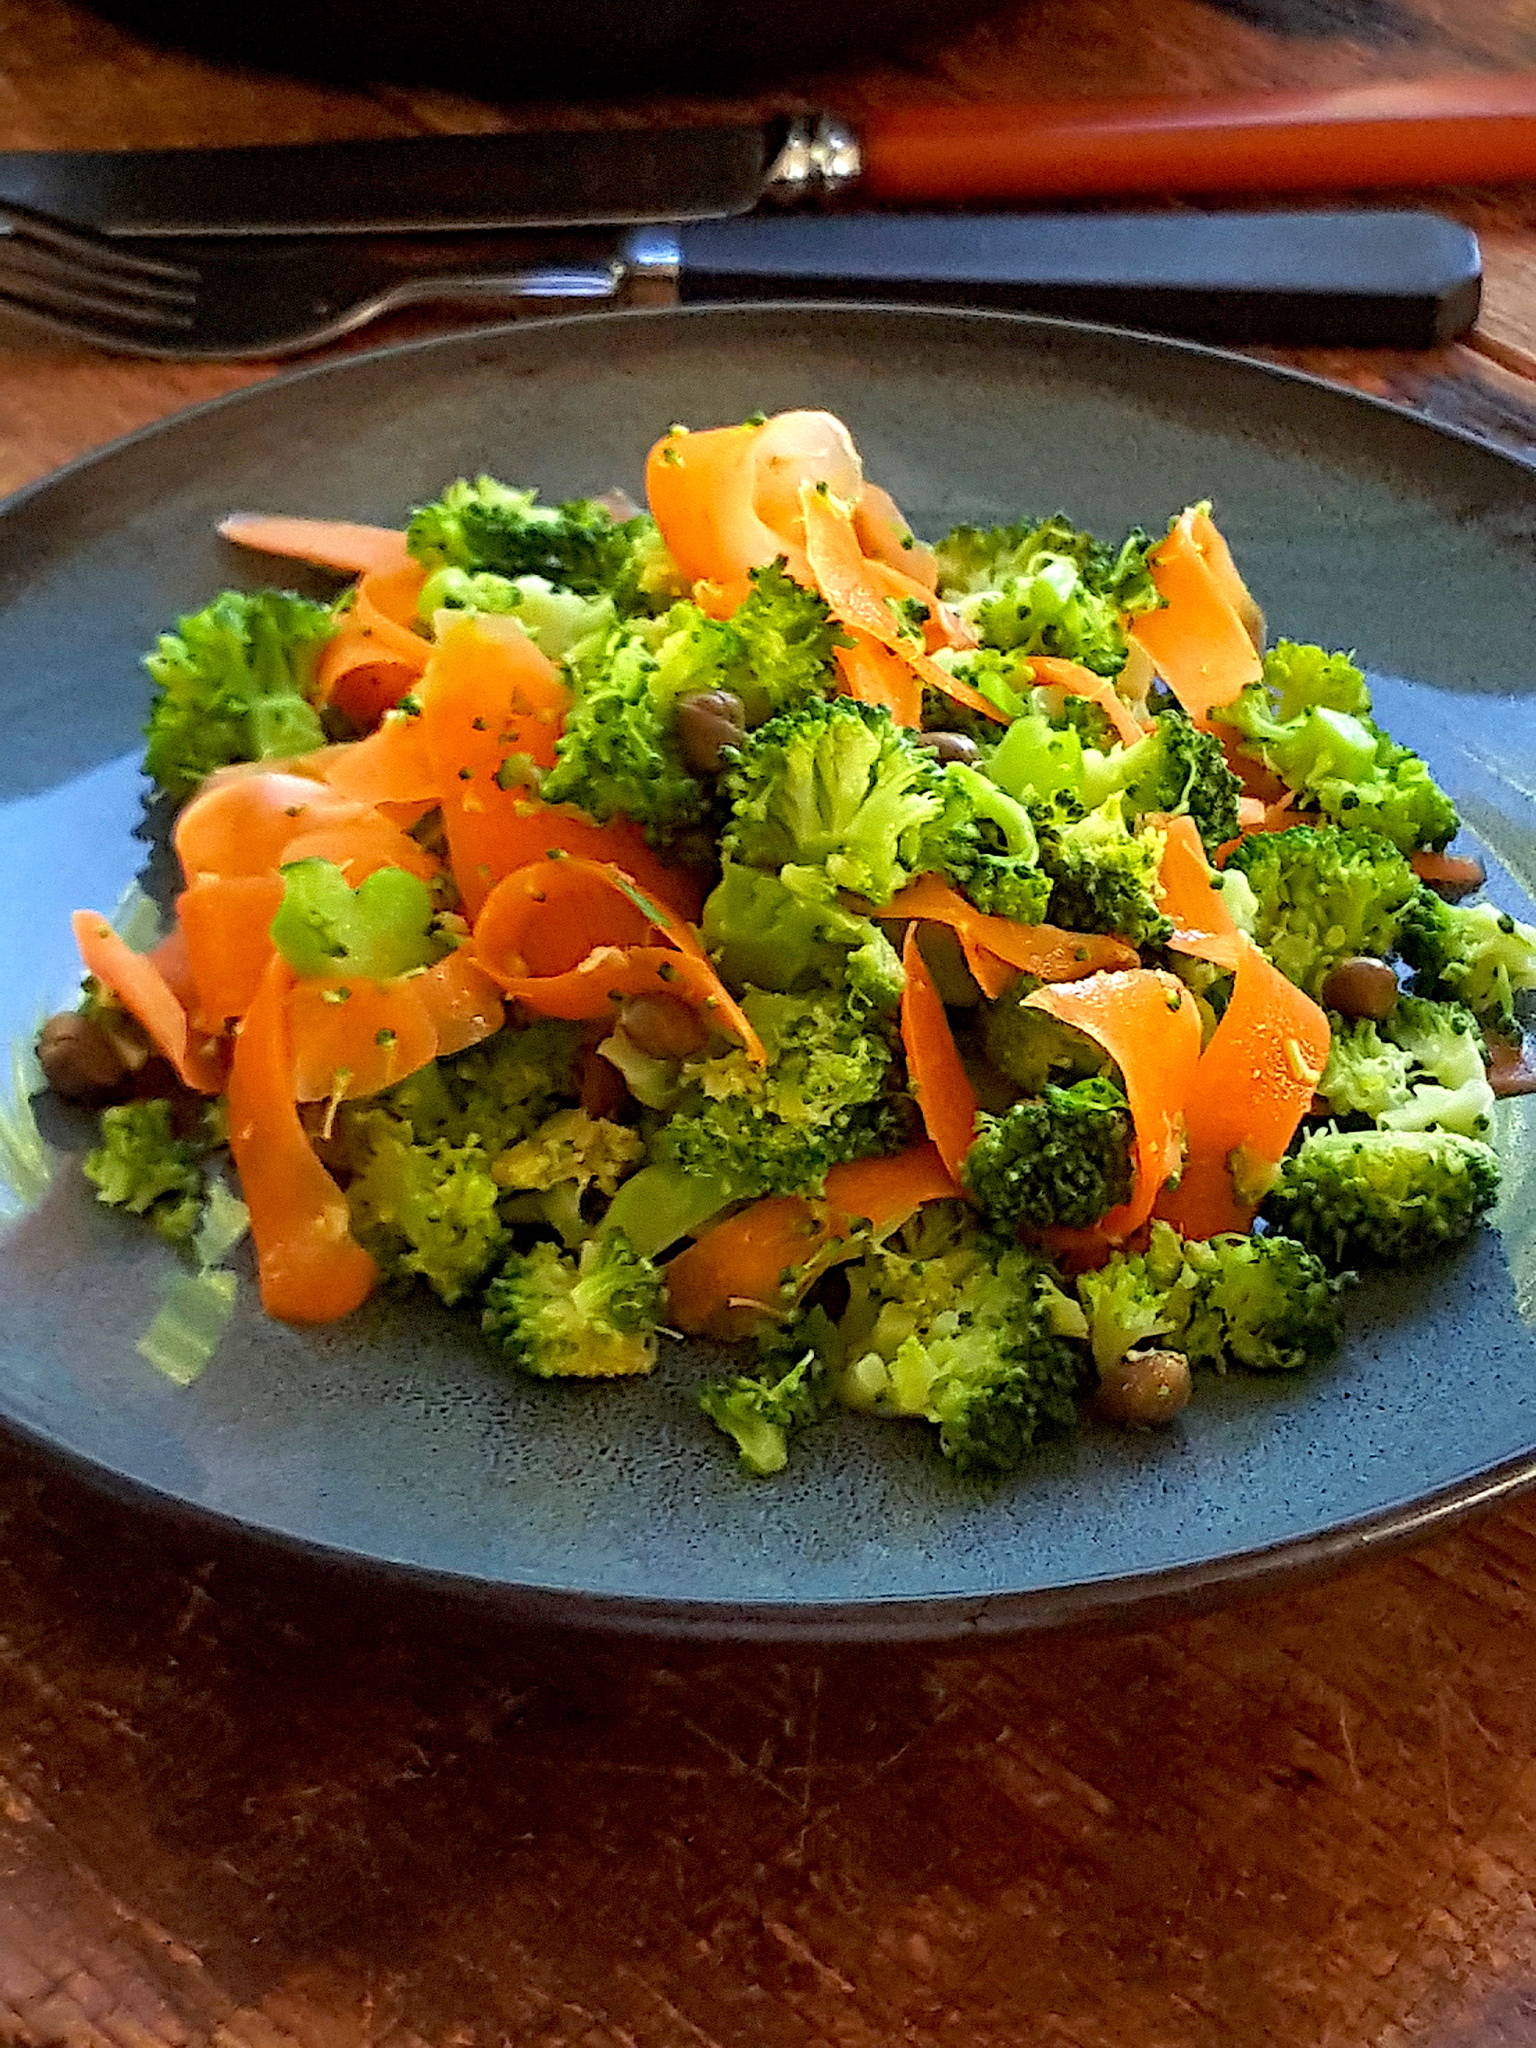 Winter salad with broccoli